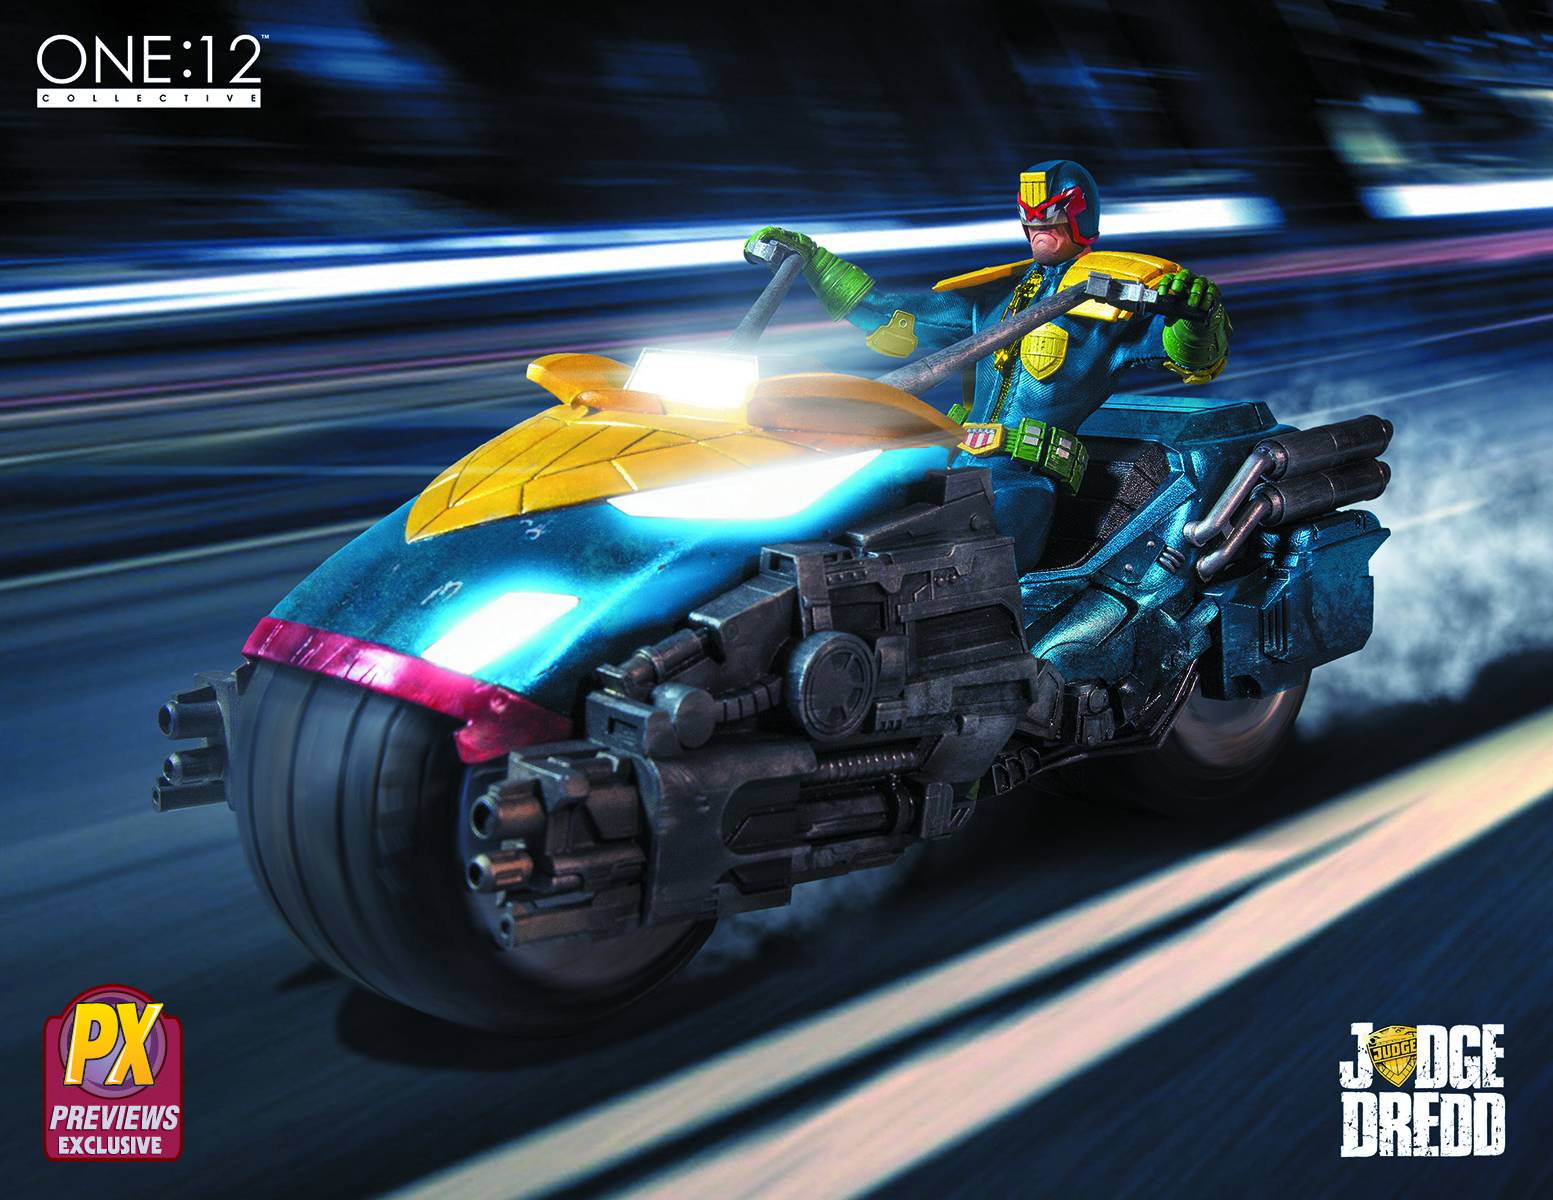 Mezco Toys PX One:12 Collective Judge Dredd and Lawmaster Bike Action Figure Box Set